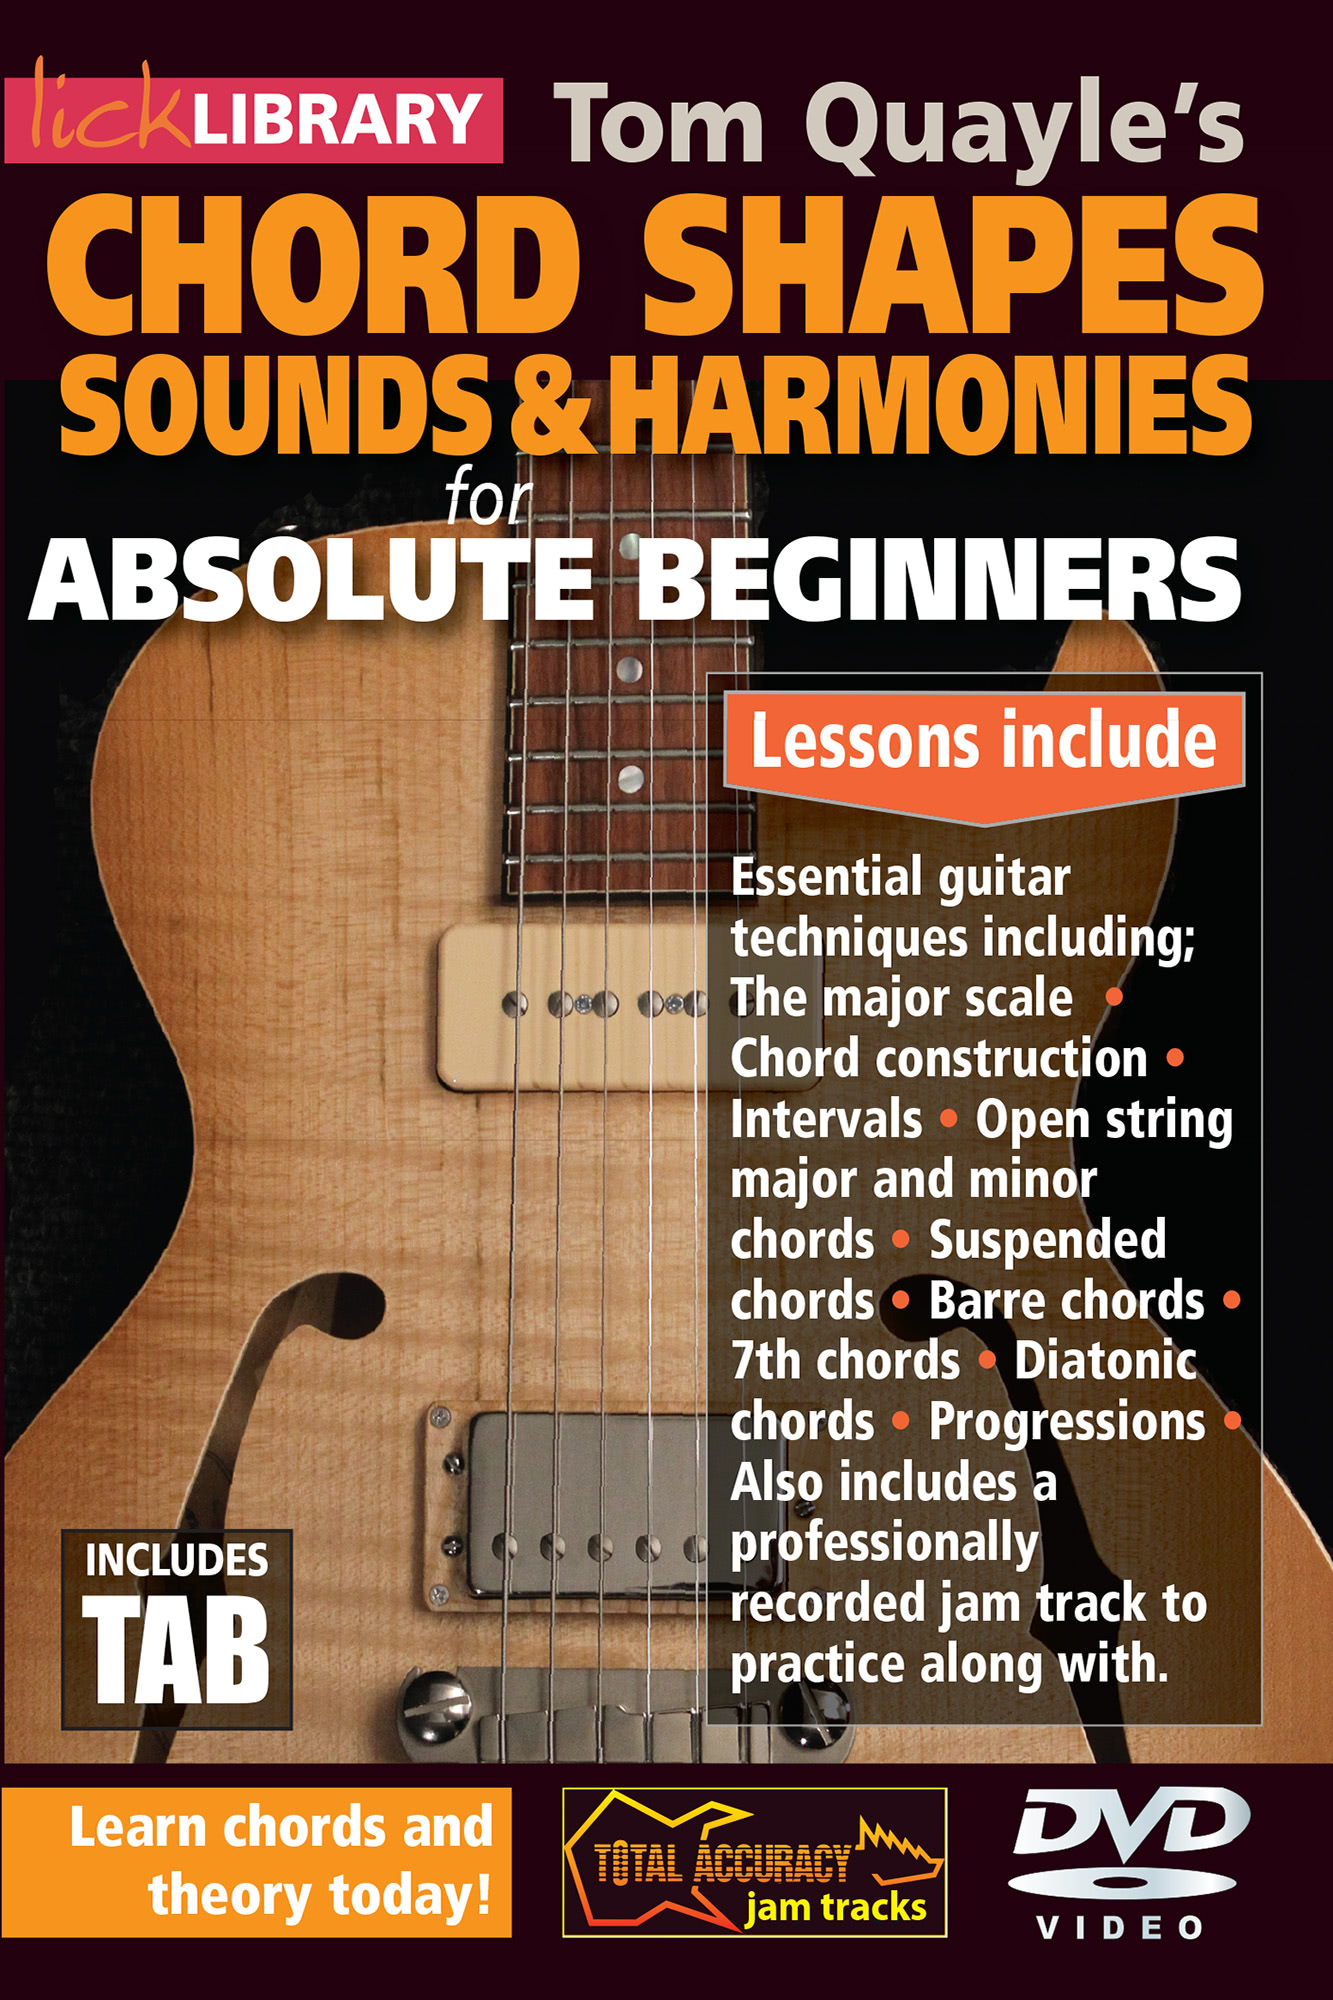 Chord Shapes, Sounds and Harmonies for Absolute Beginners